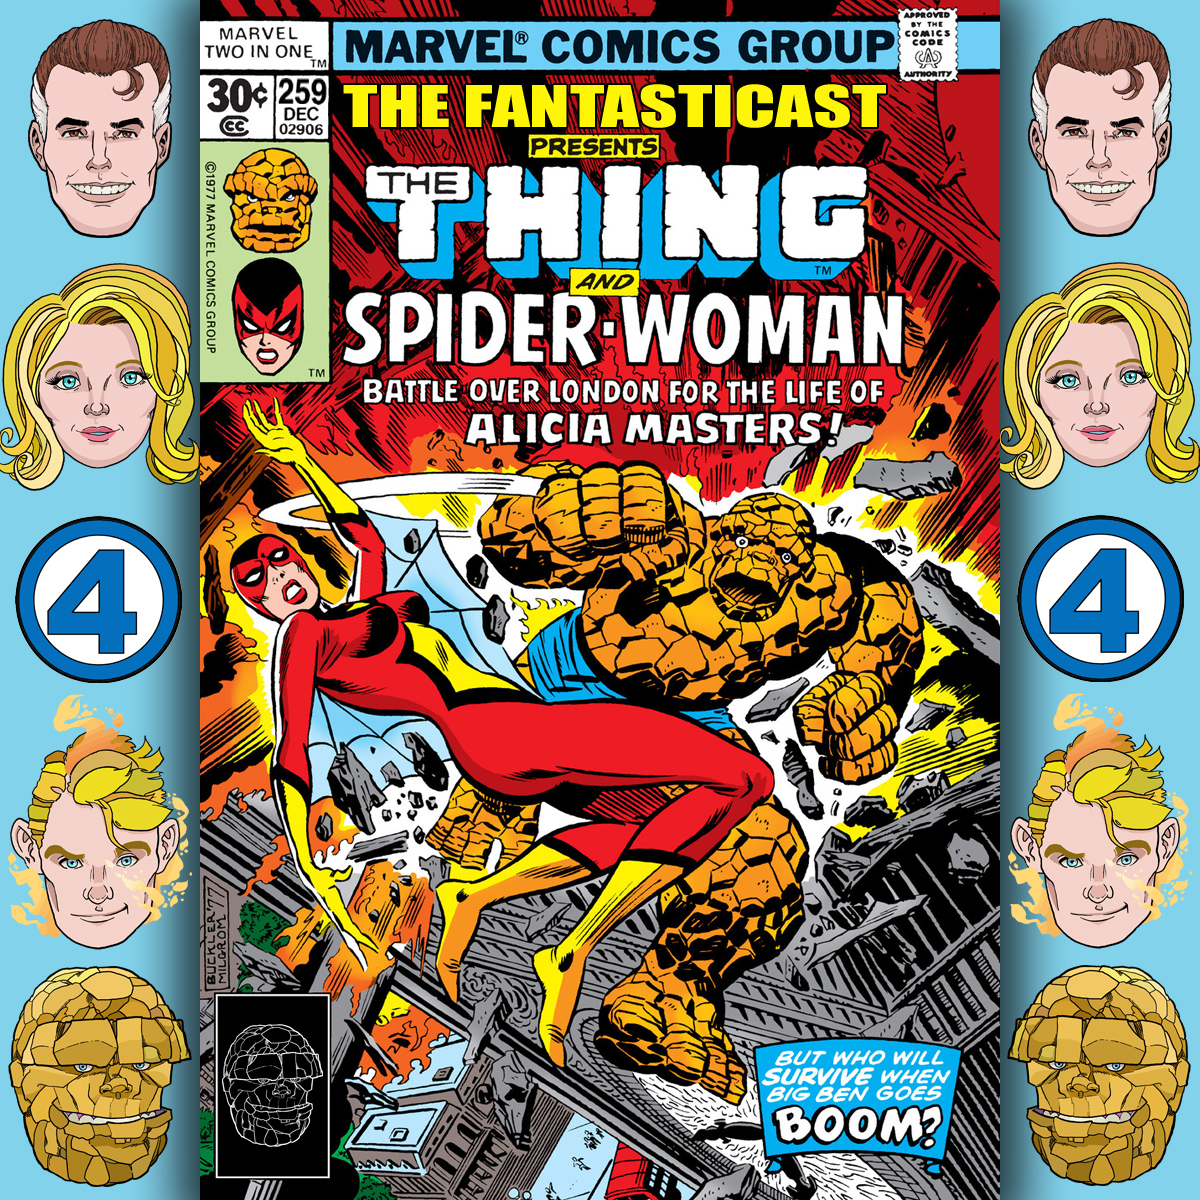 The Fantasticast Episode 259